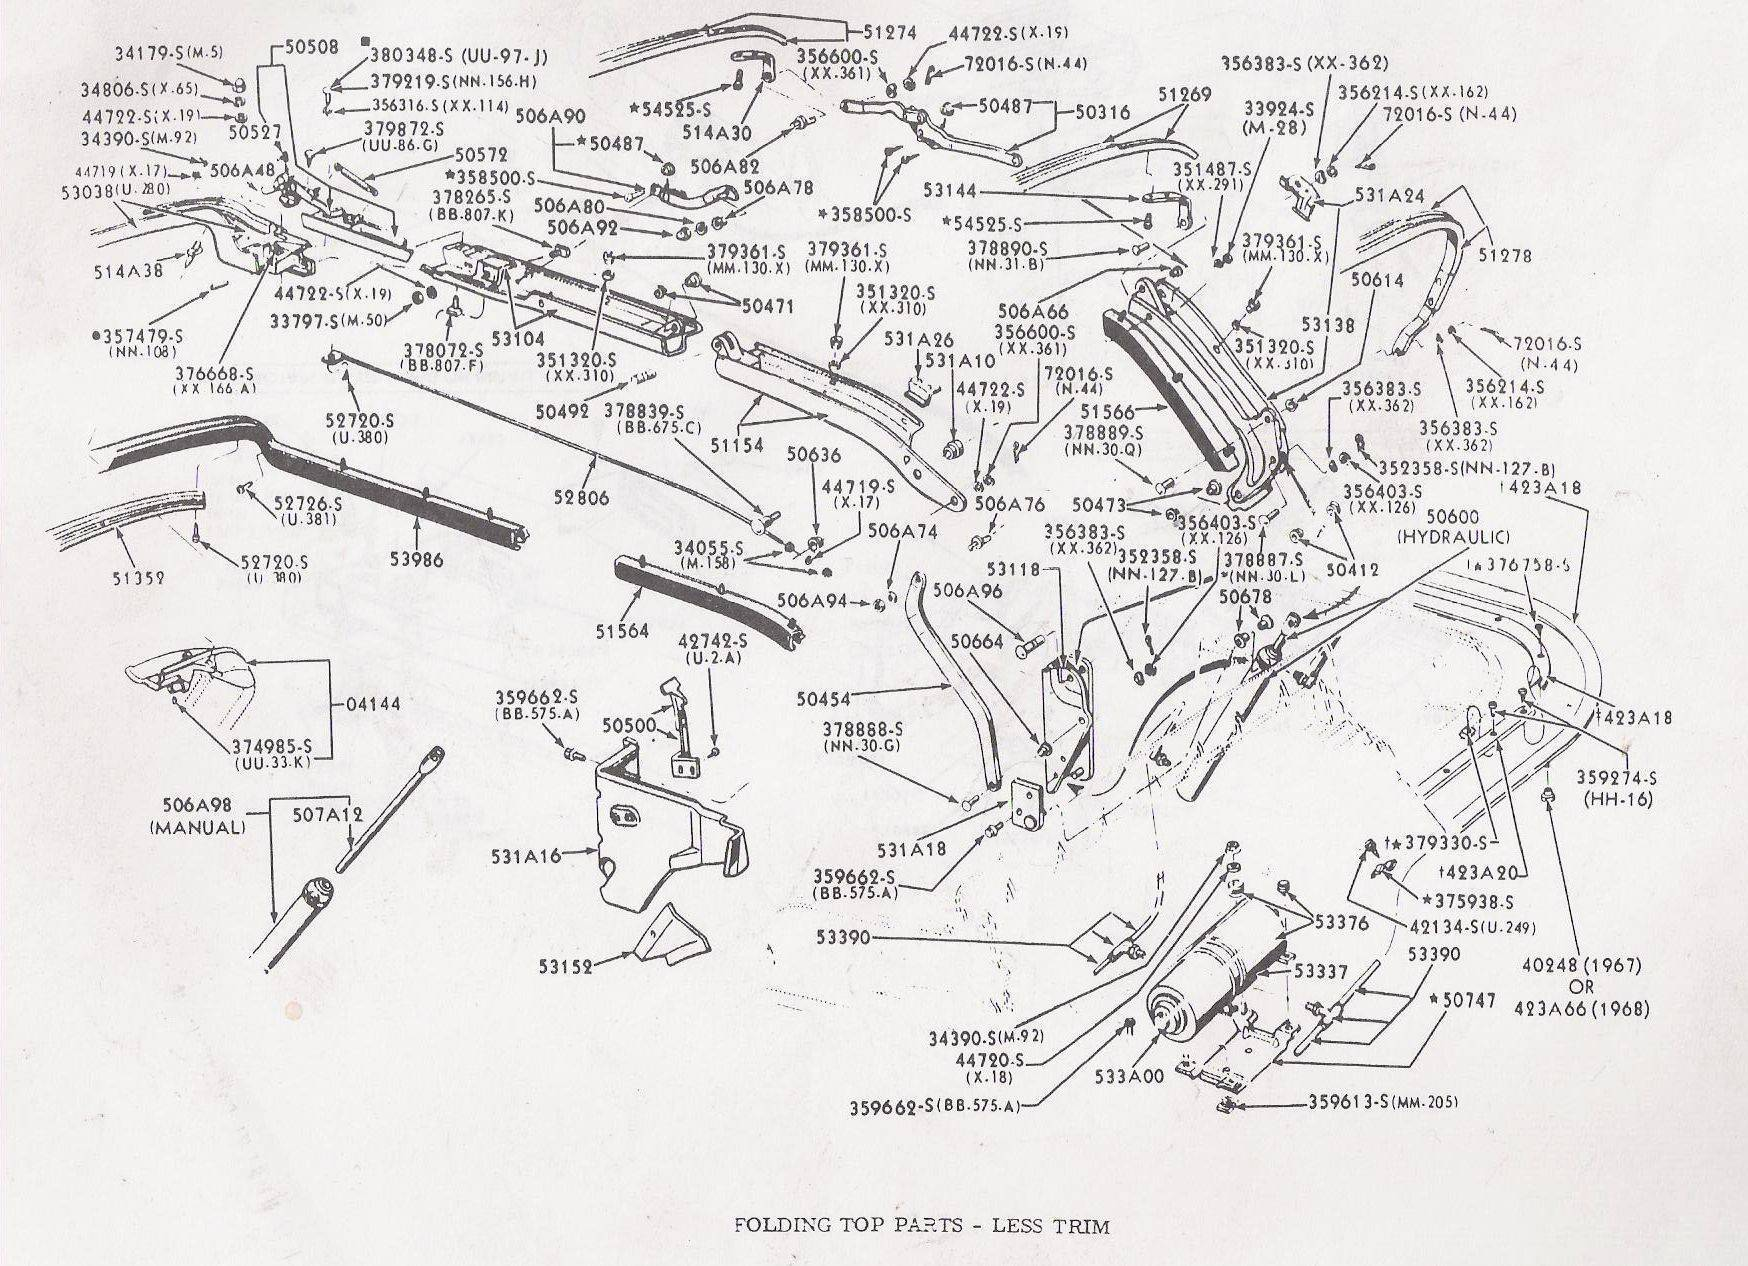 66 ford mustang wiring diagram 5 pin trailer plug australia convertible weatherstripping trim piece